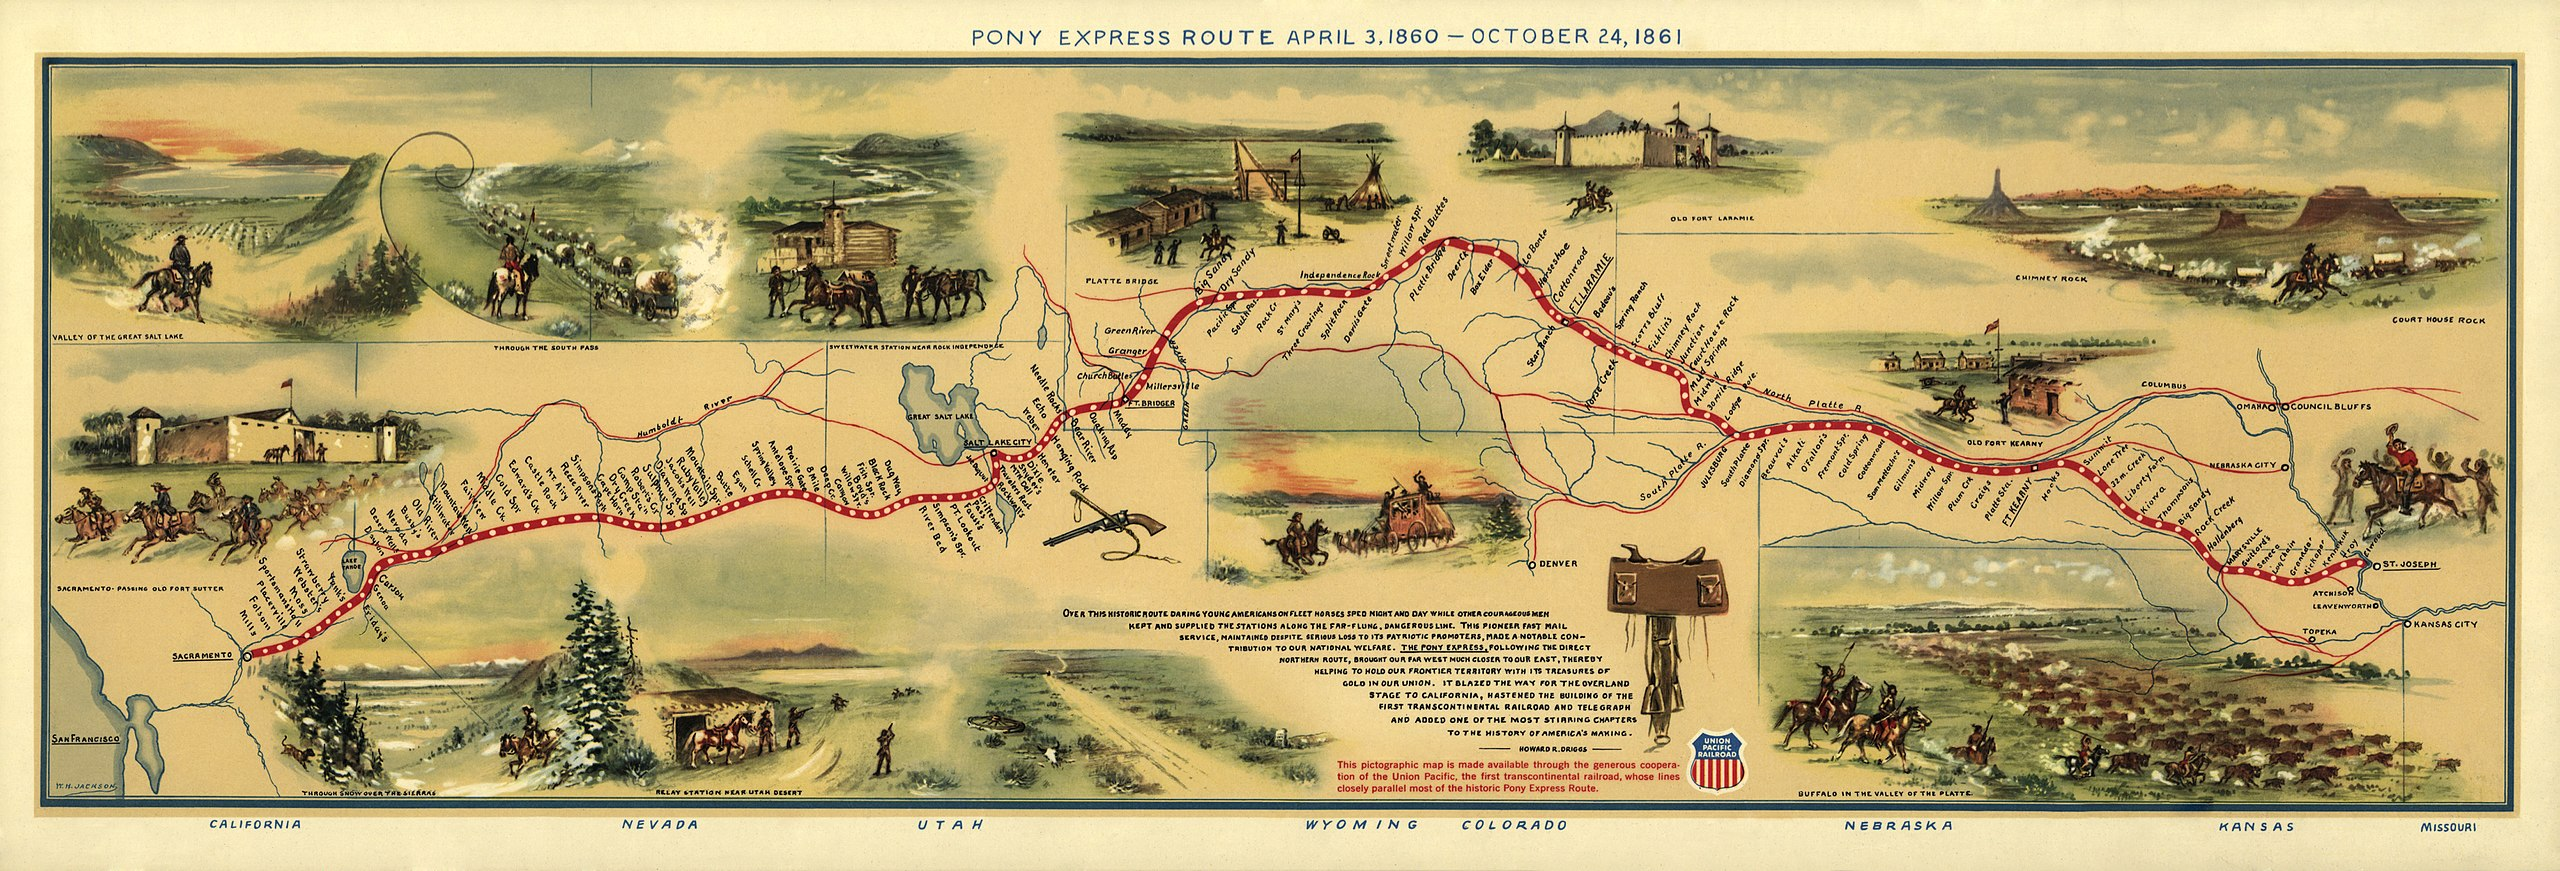 Pony Express Map (1860) by William Henry Jackson